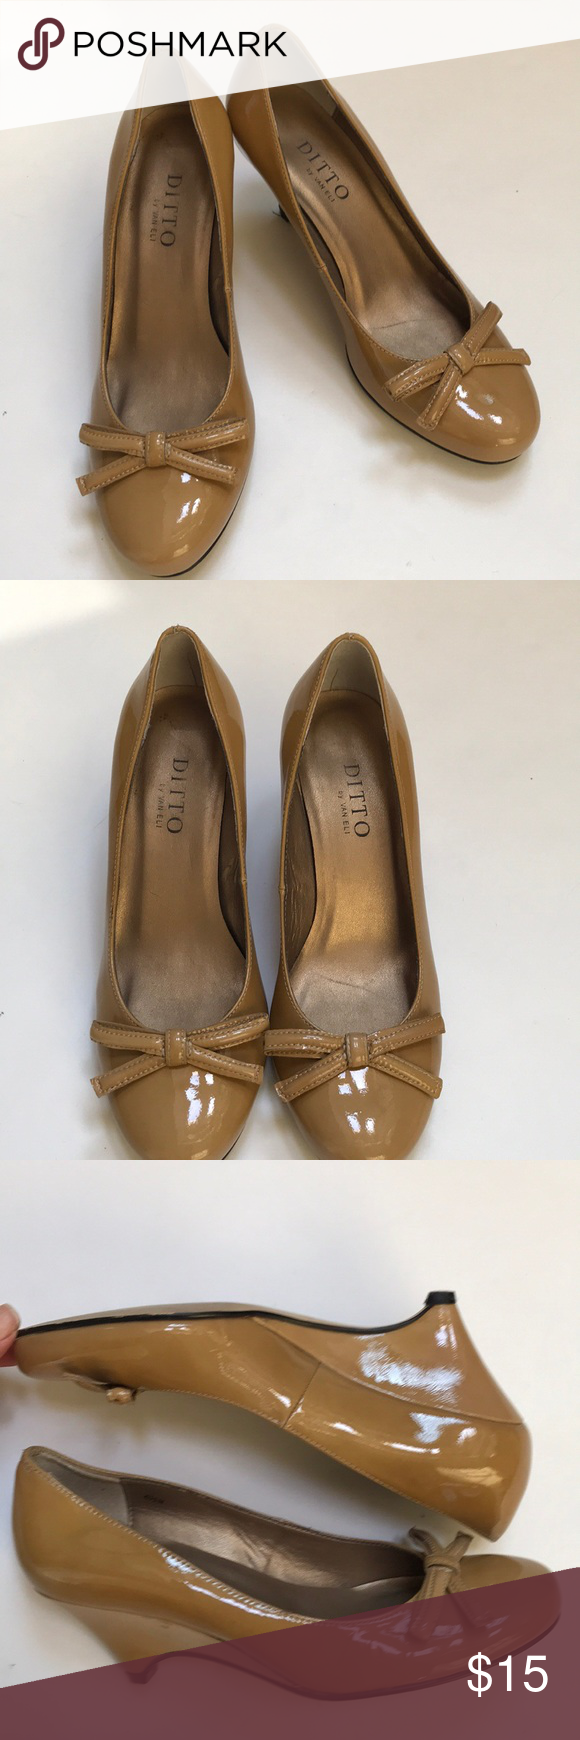 79347228e975 Ditto By Van Eli Wedge Heels Ditto By Van Eli Patent Leather Wedge Heels  size 6.5